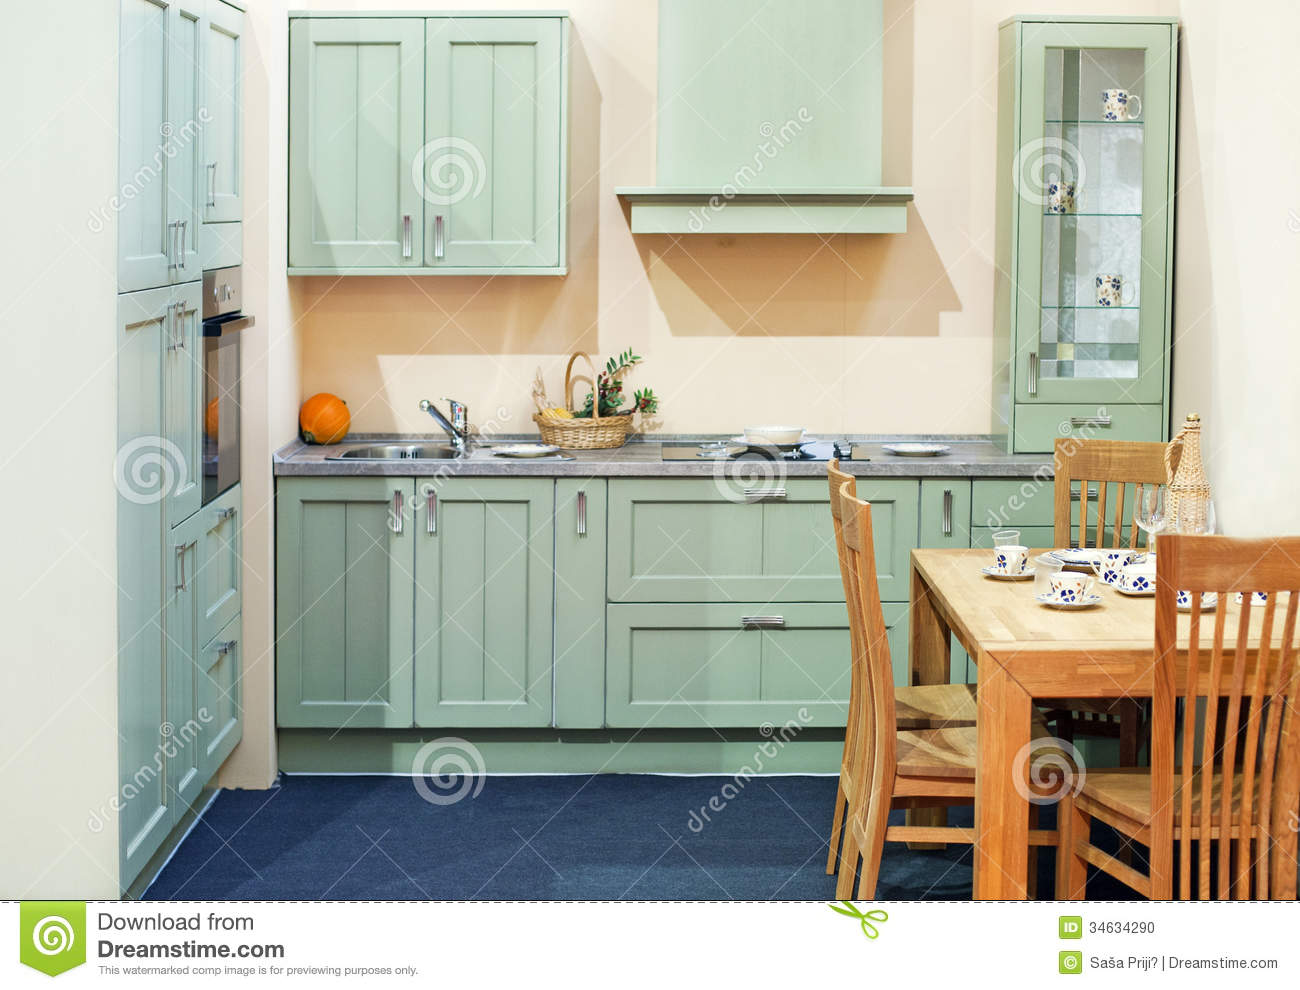 Classy Kitchen Interior Stock Photo Image Of Range Ritzy